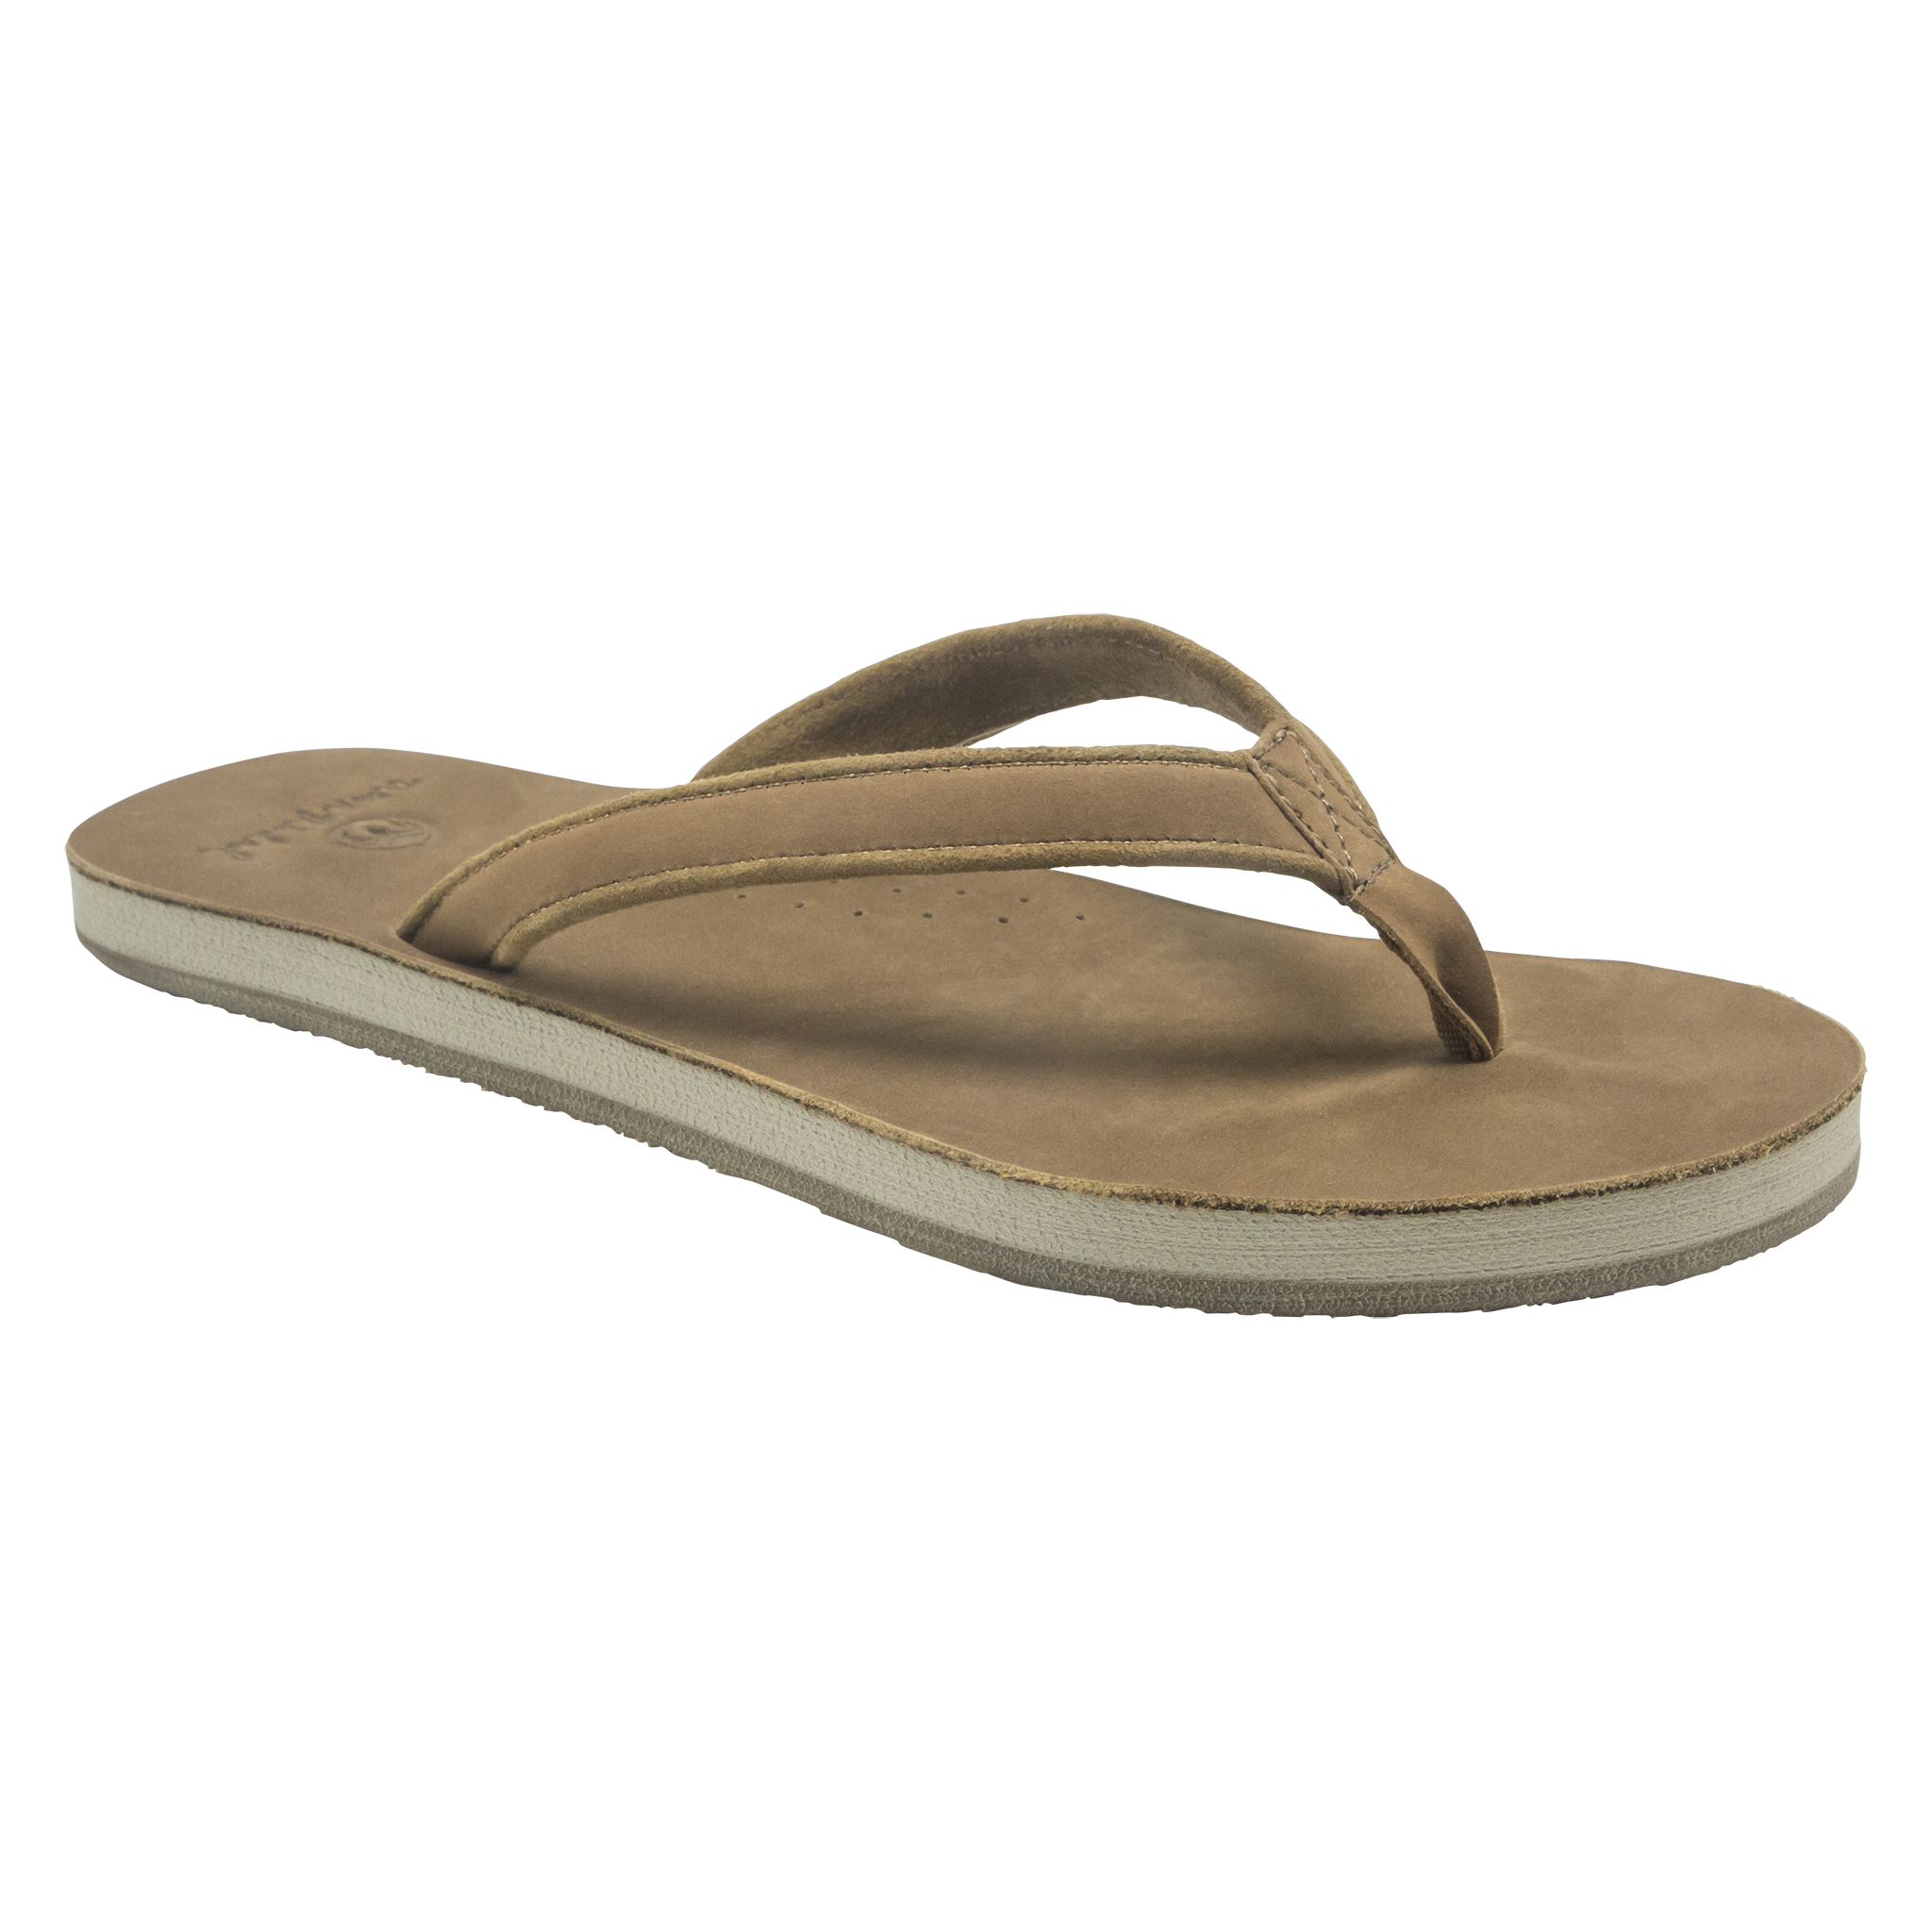 The Windansea - Women's Sandal